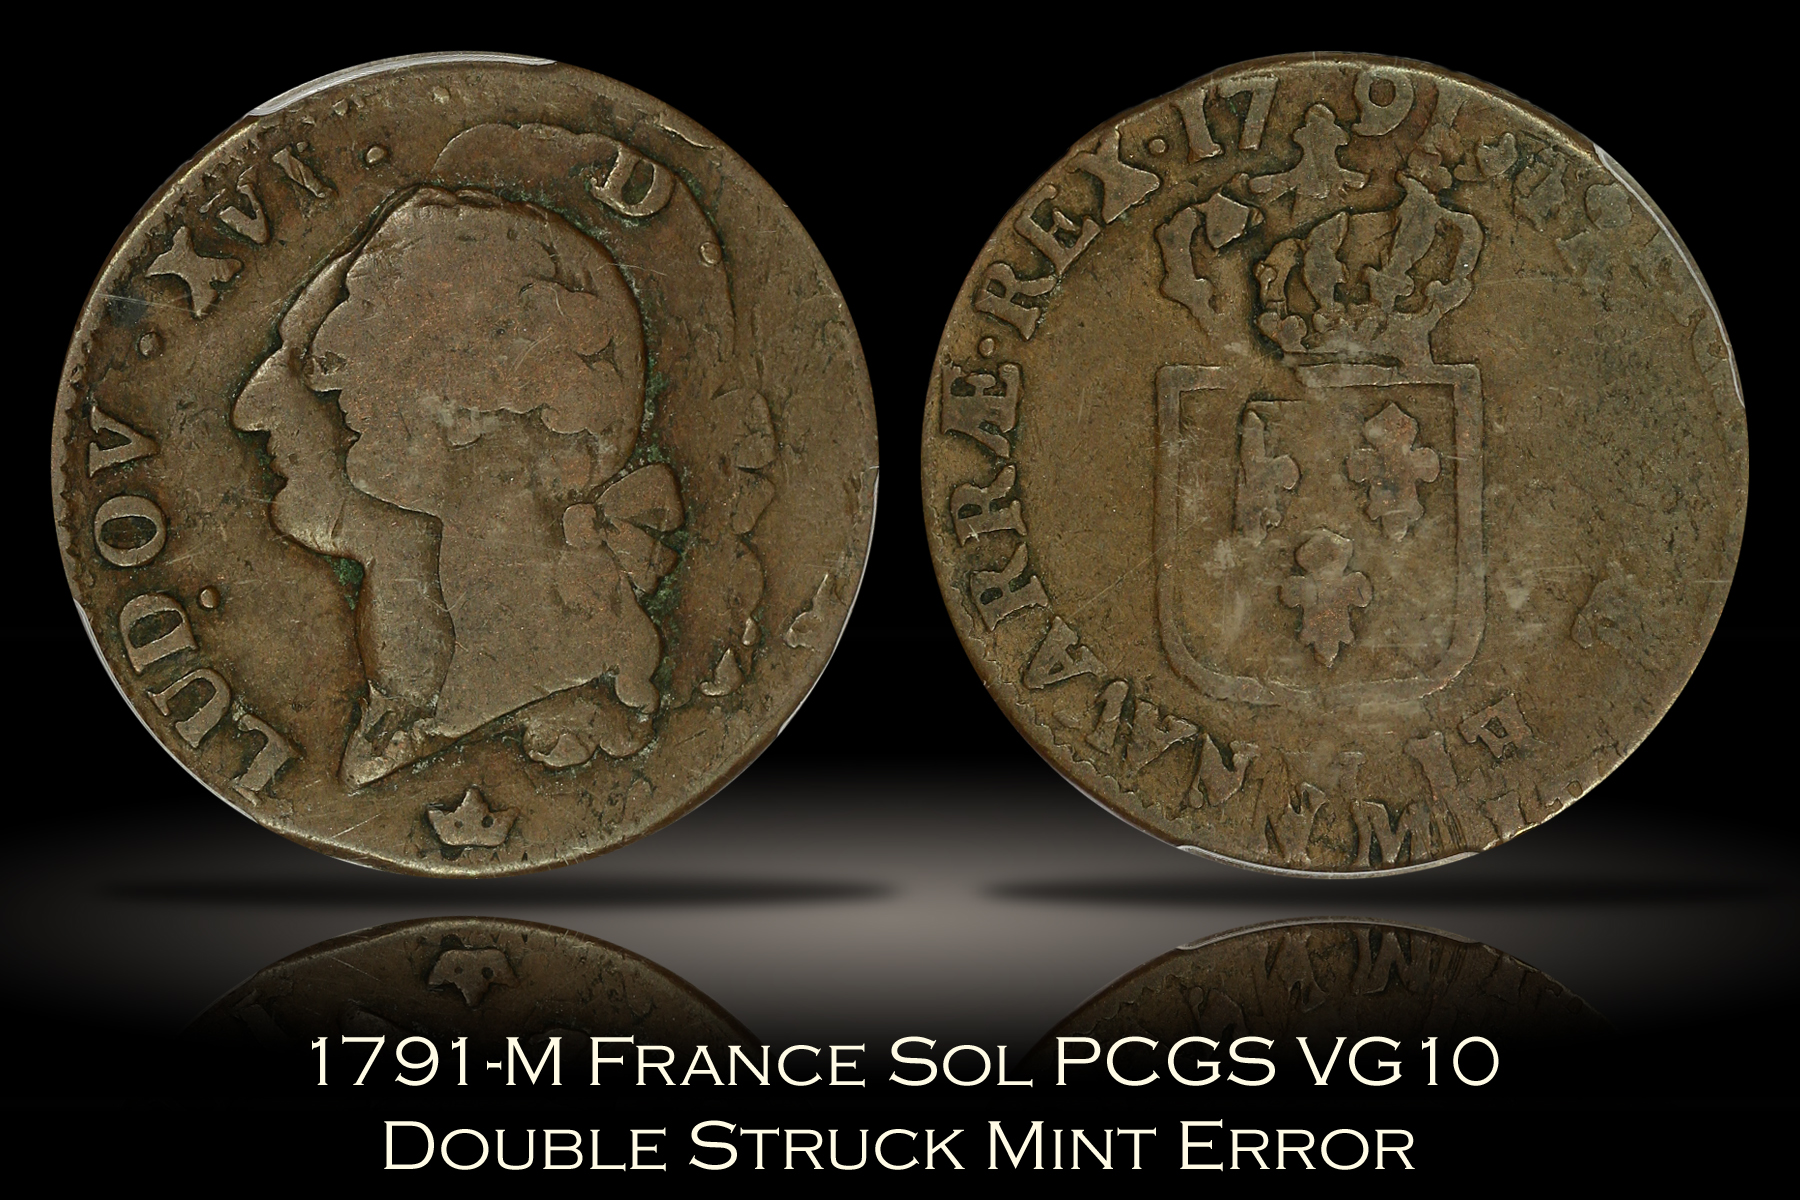 1791-M France Sol PCGS VG10 Double Struck Mint Error